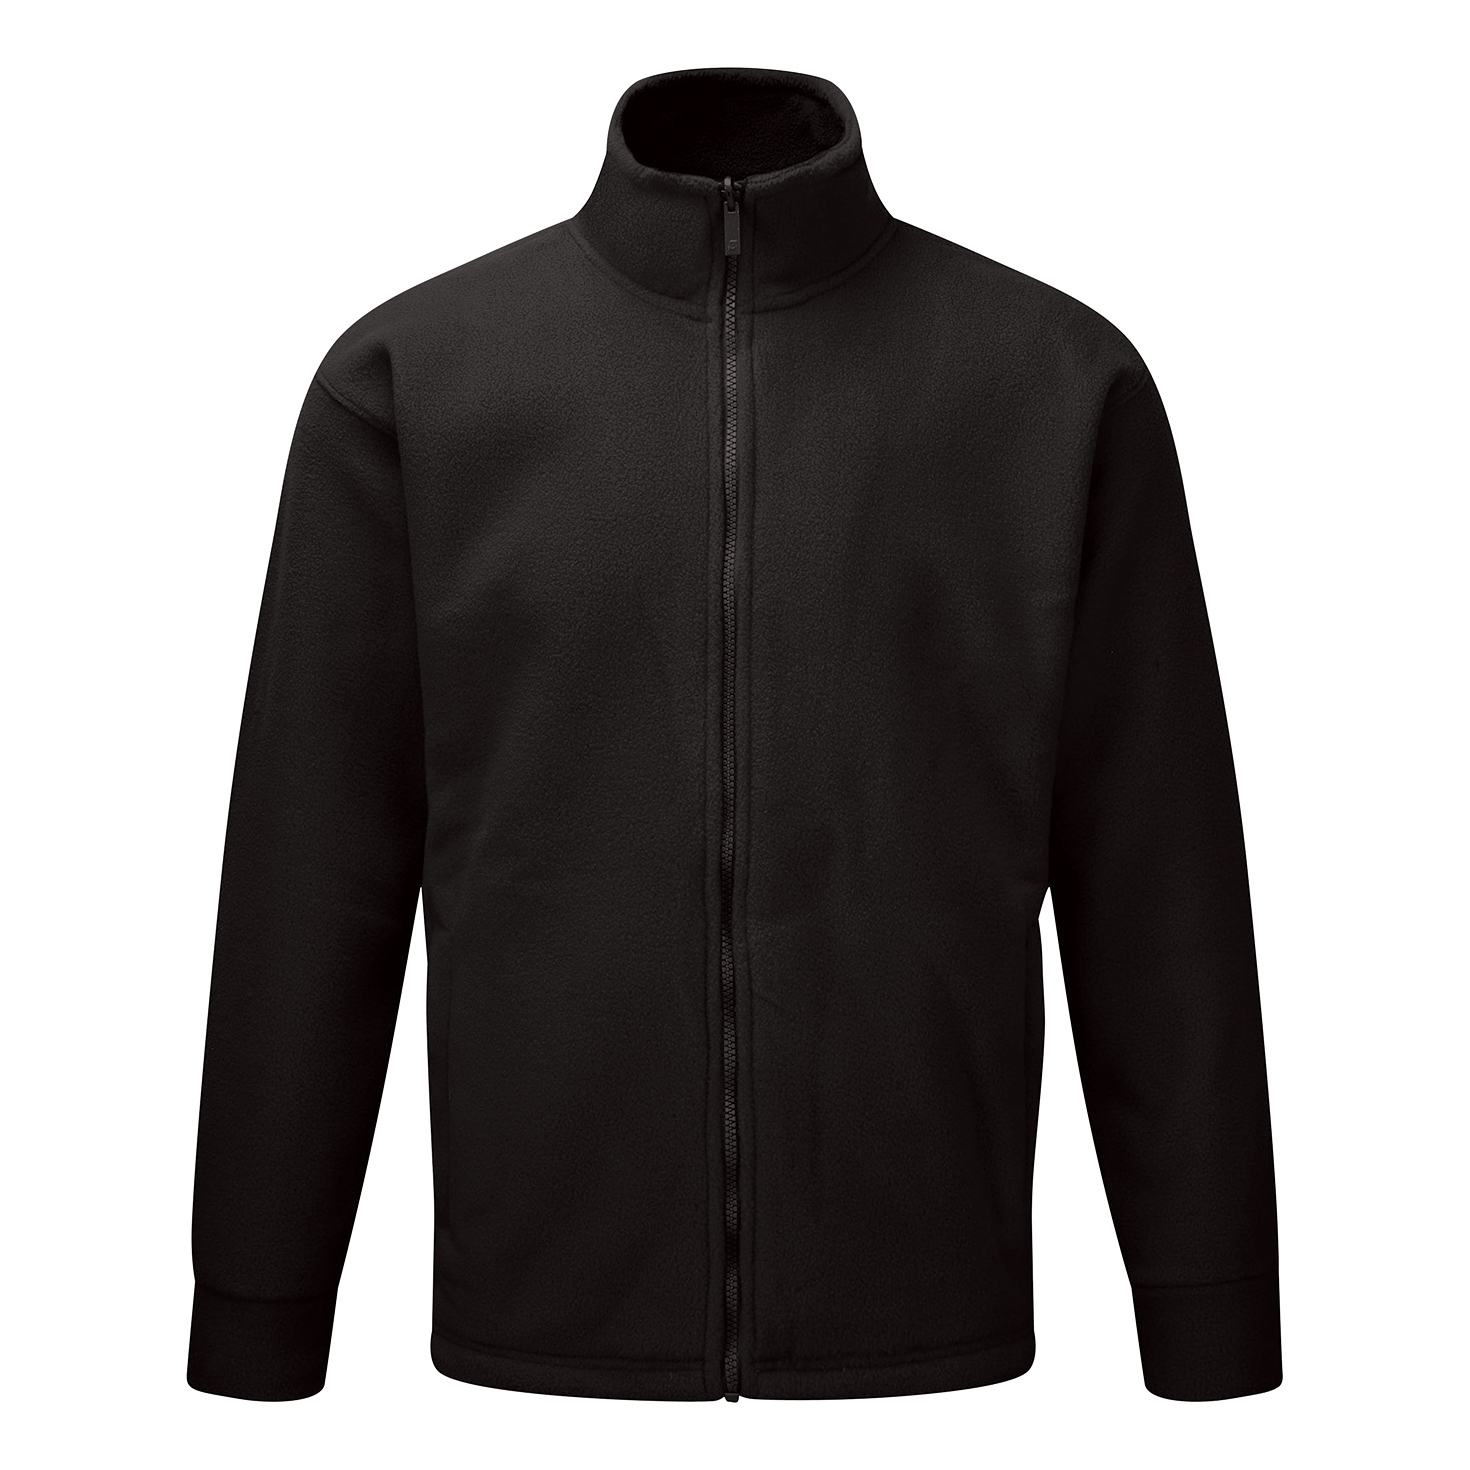 Classic Fleece Jacket Elasticated Cuffs Full Zip Front XL Black Ref FLJBLXL *1-3 Days Lead Time*